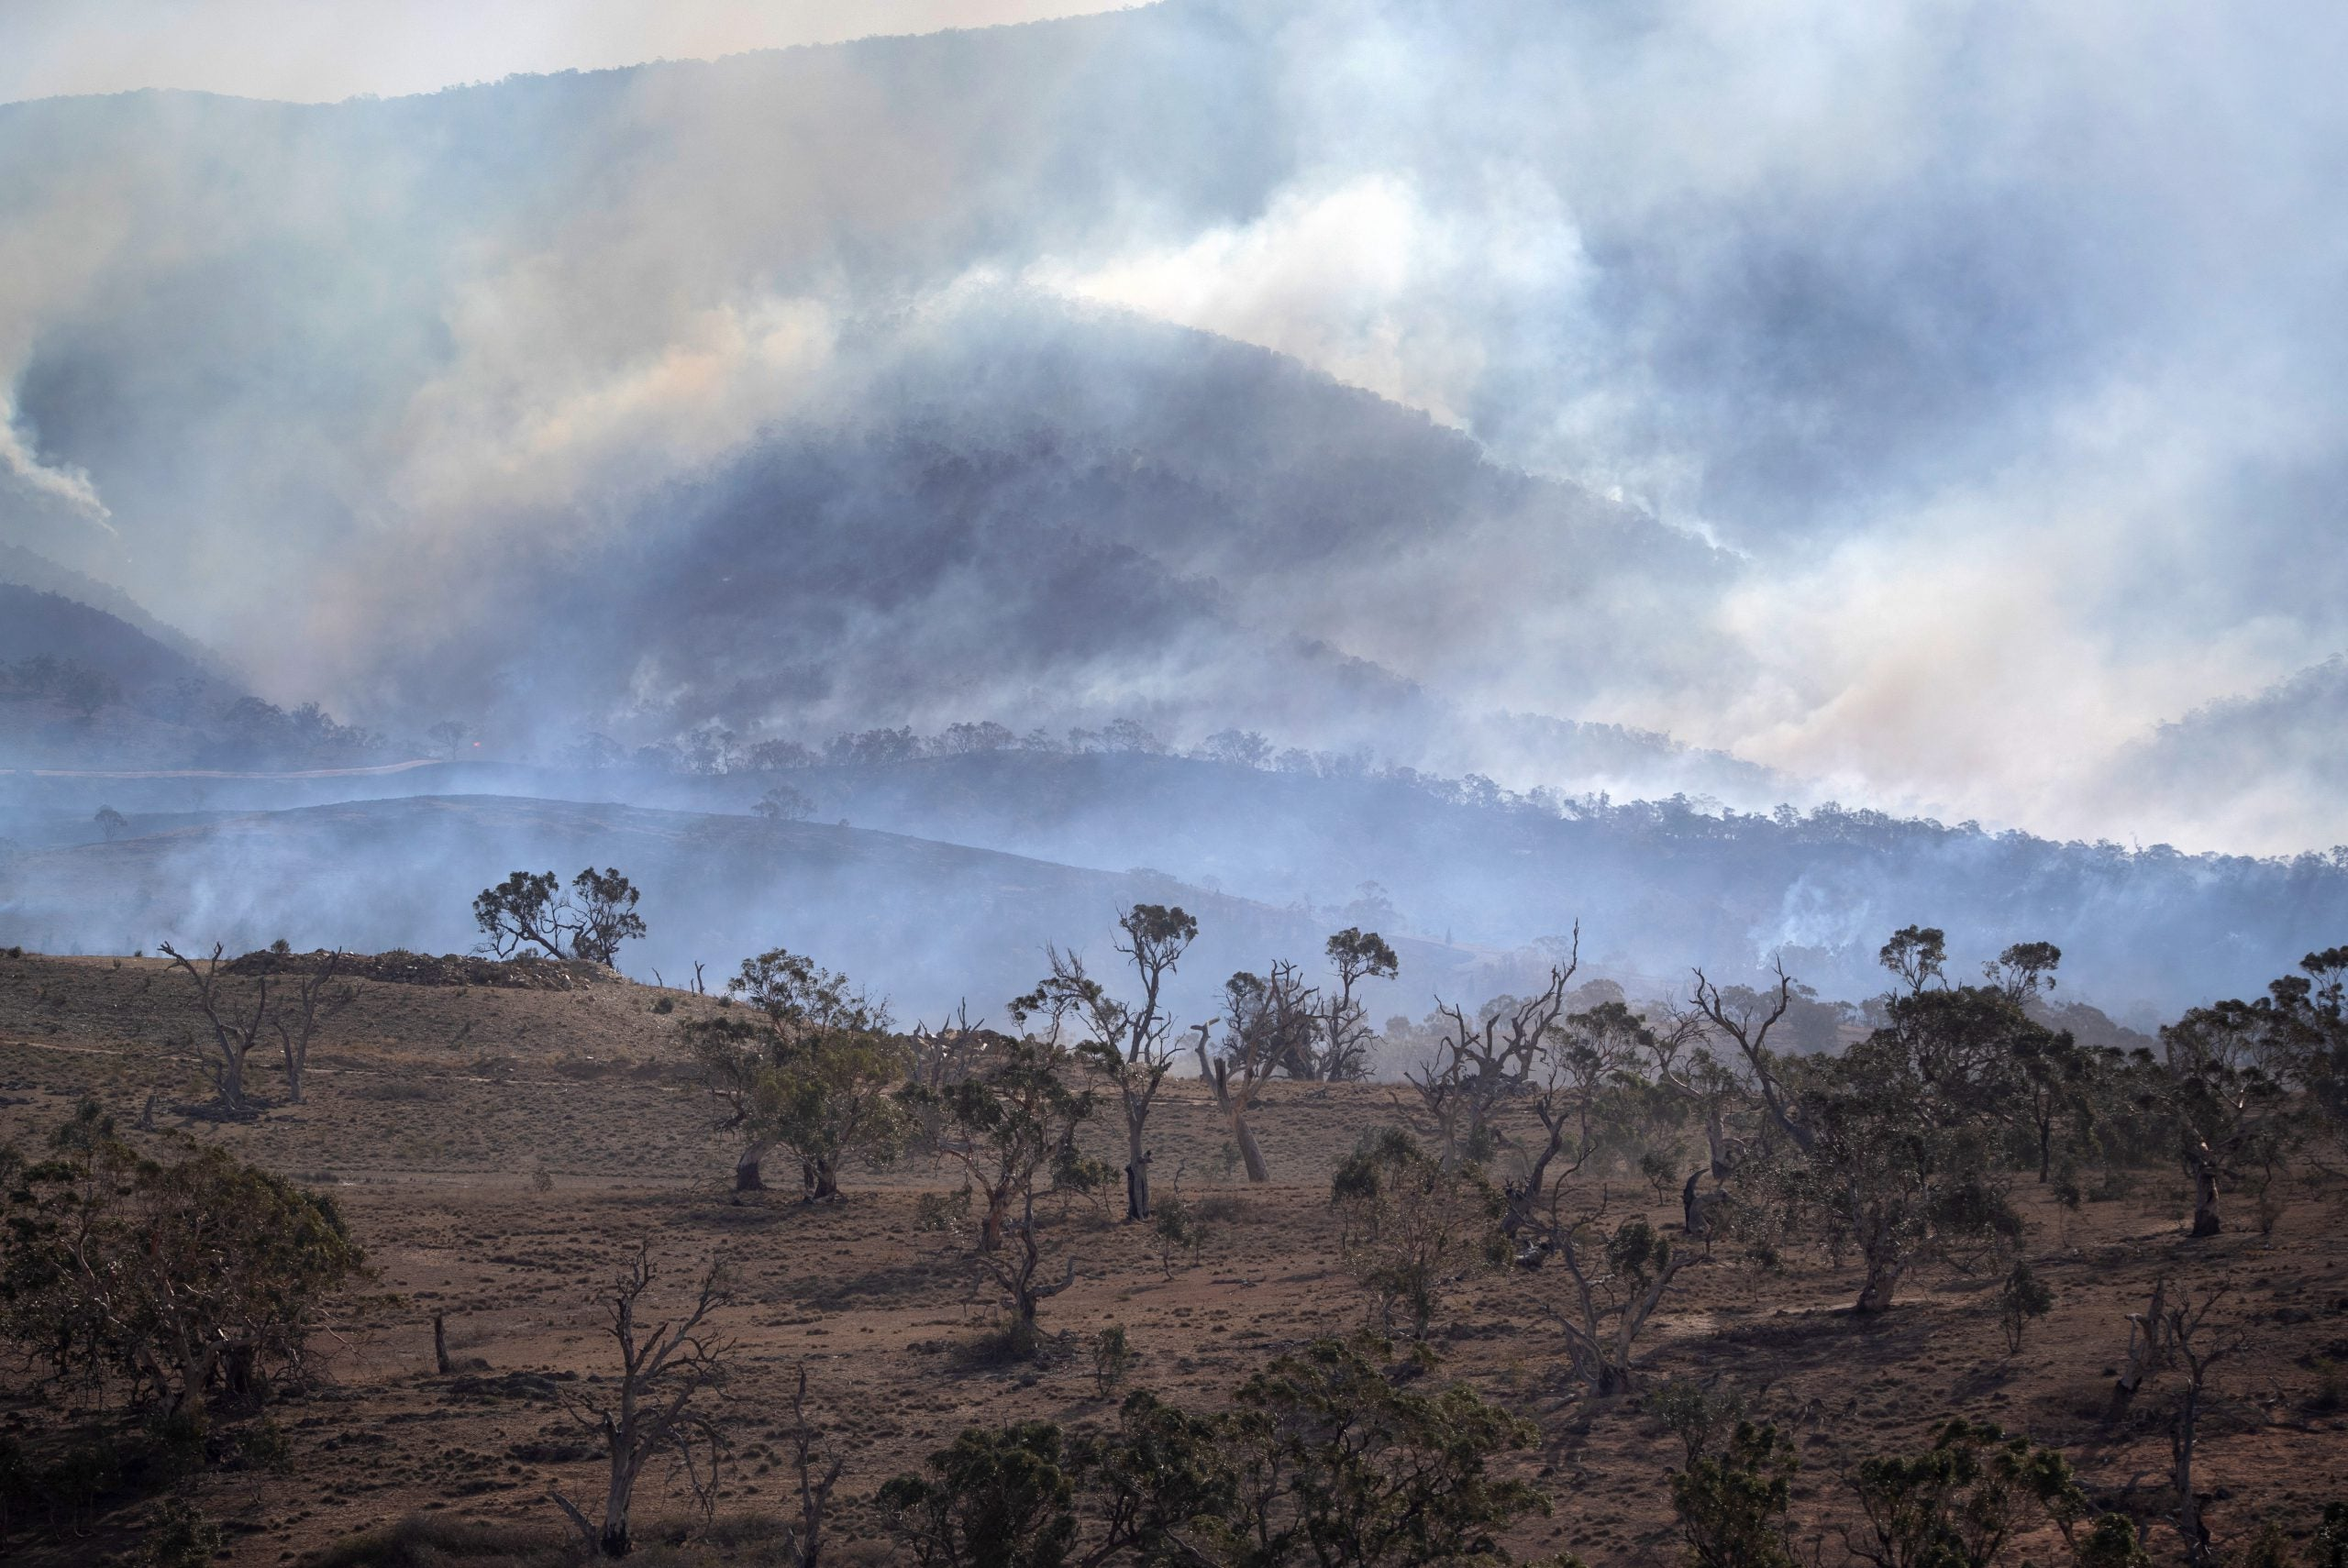 From the NS archive: The bush fire